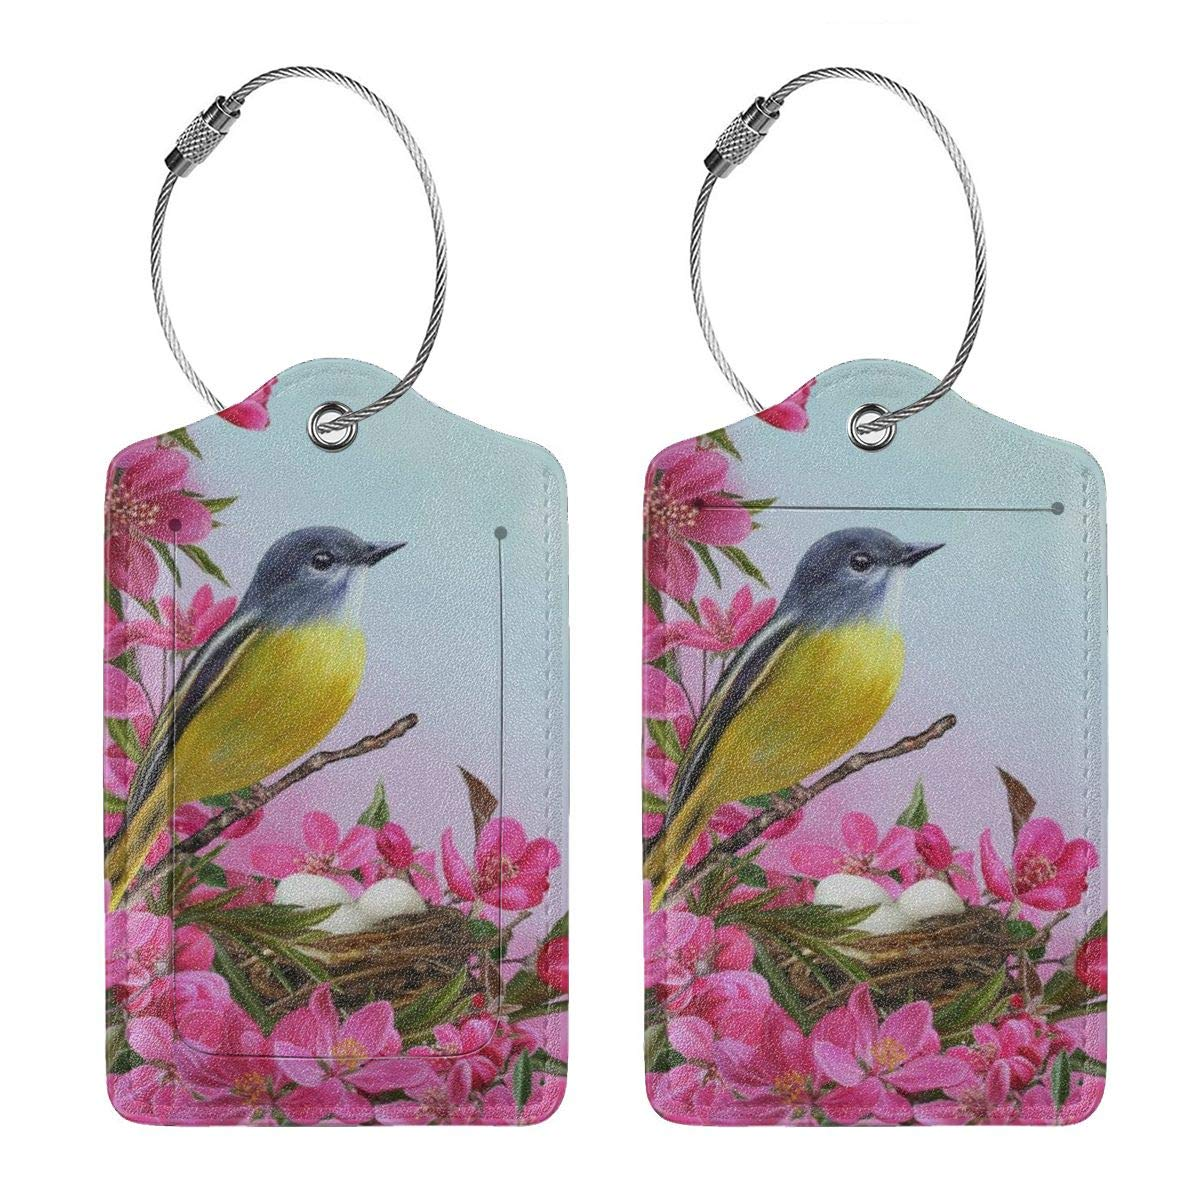 Yellow Bird Near The Nest On Apple Tree Leather Luggage Tags Personalized Flexible Custom Travel Tags With Adjustable Strap